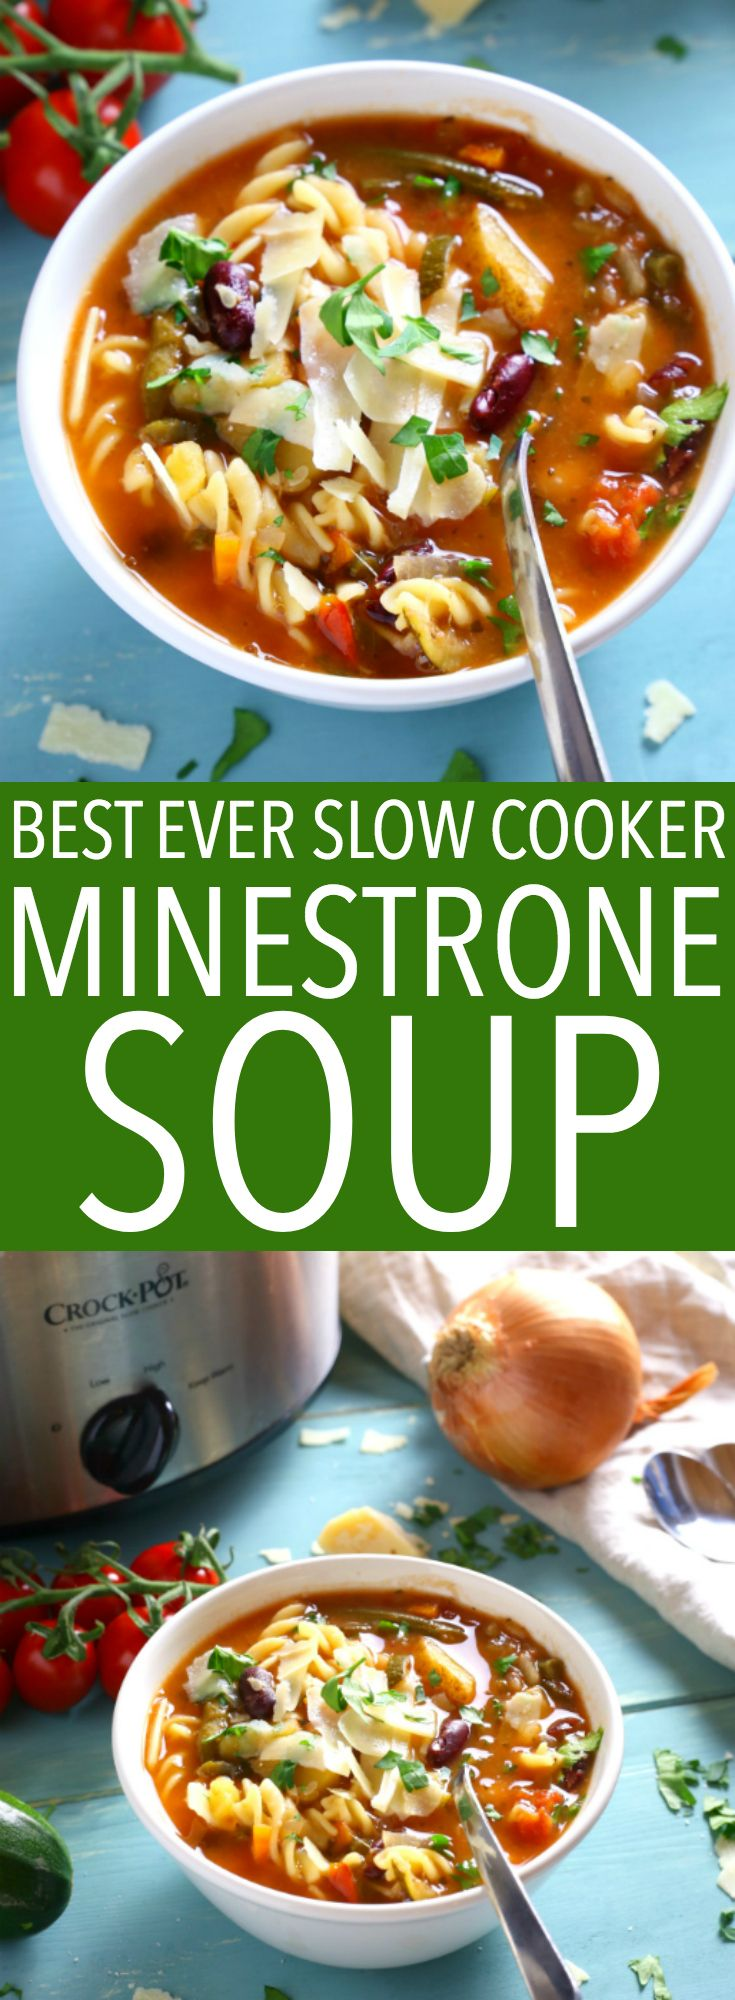 This Best Ever Slow Cooker Minestrone Soup is thick, comforting, and packed full of vegetables! It's so flavourful and easy to make, and it's the perfect way to warm up on a cold day! Recipe from thebusybaker.ca! #minestronesoup #slowcookersoup #slowcookerminestrone #besteverminestrone via @busybakerblog